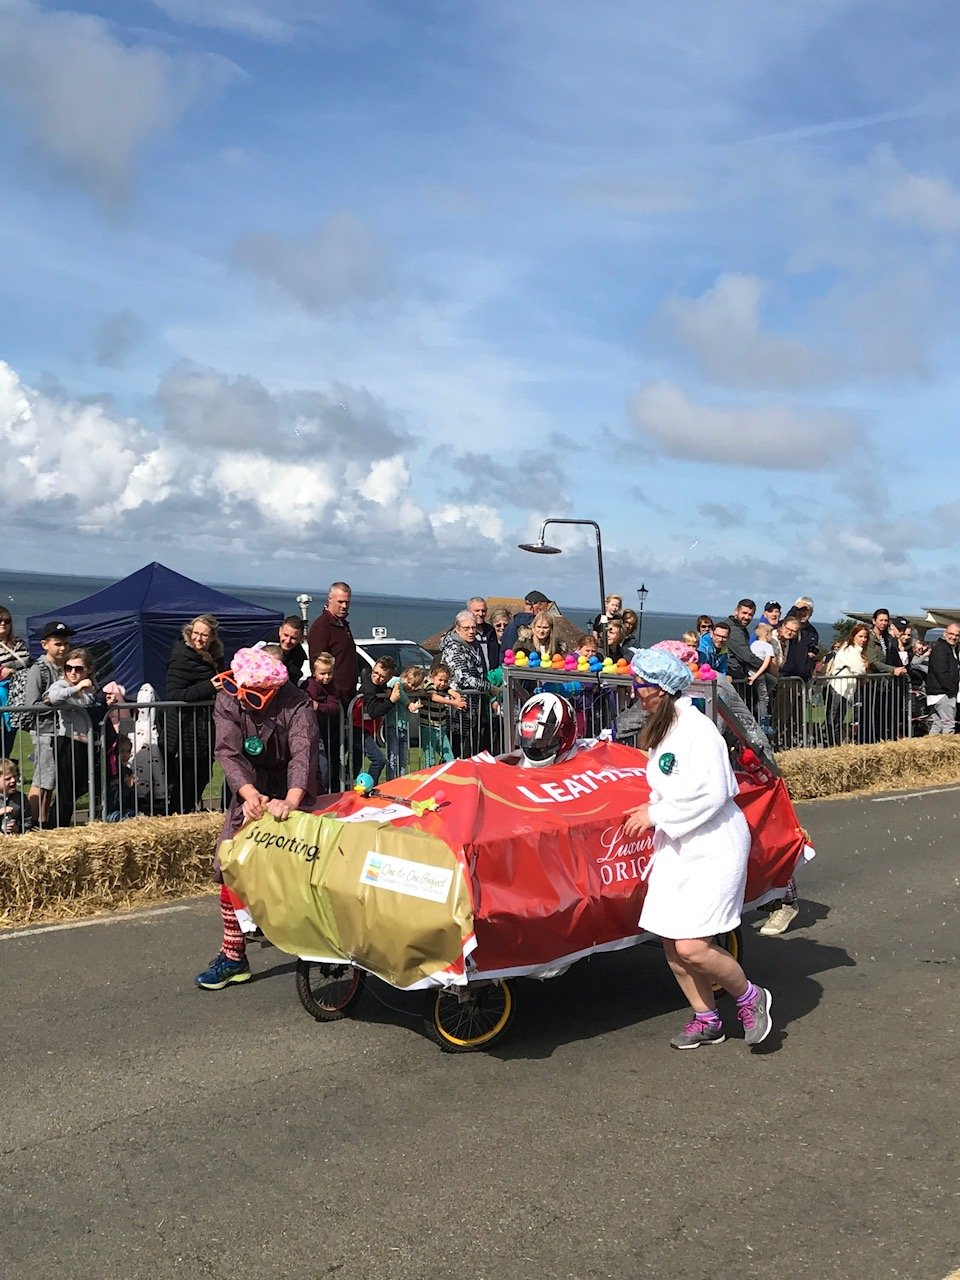 Image of a red kart participating in the Soap Box Derby